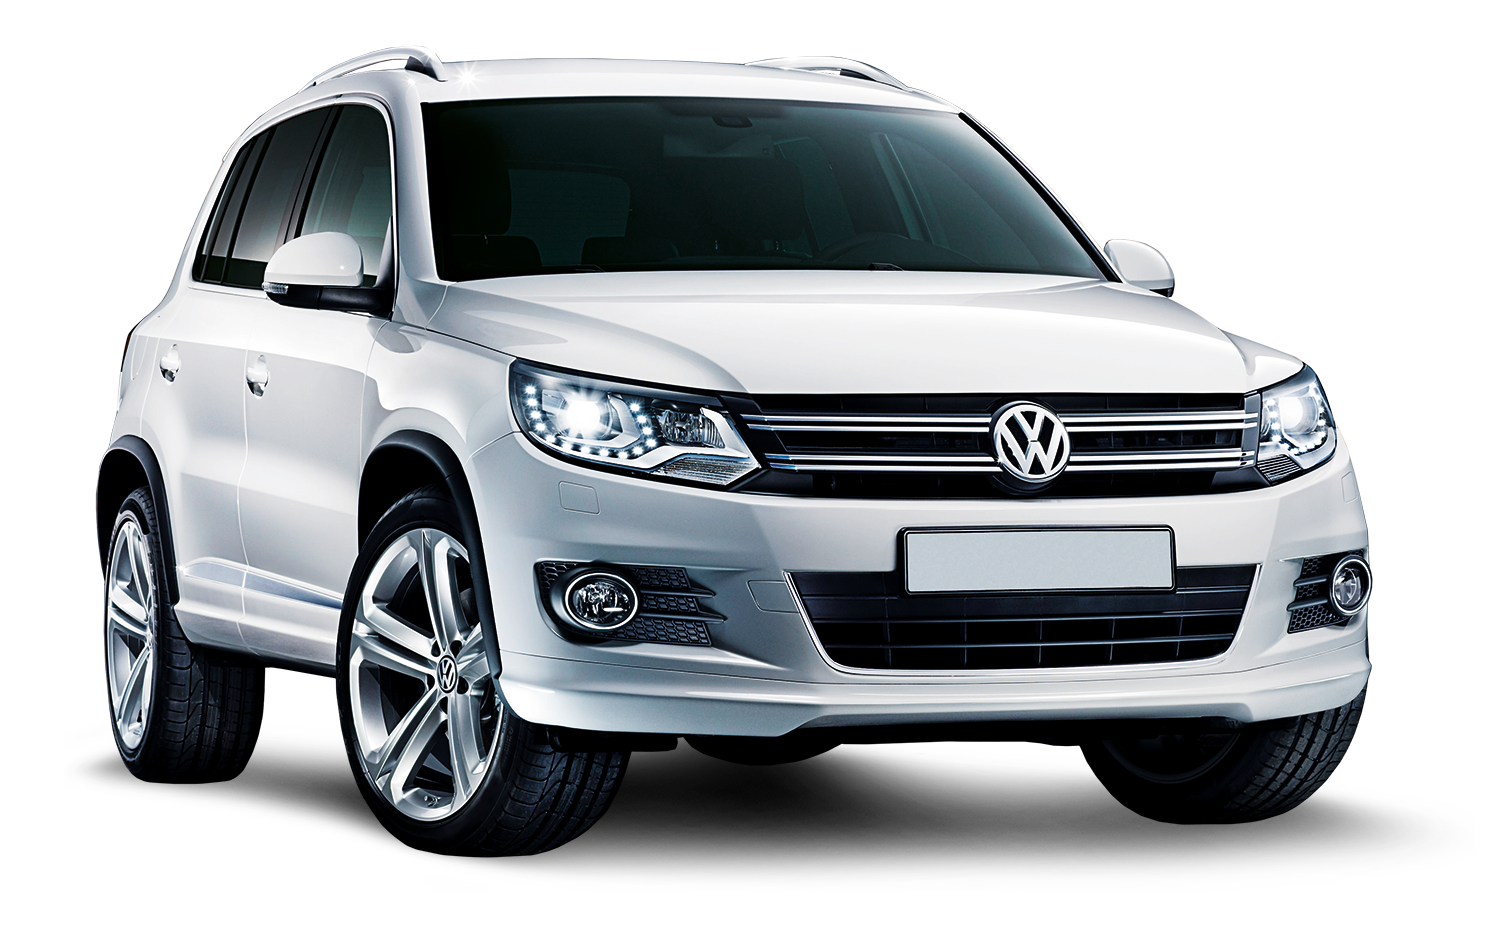 Download Volkswagen PNG Image for Free.